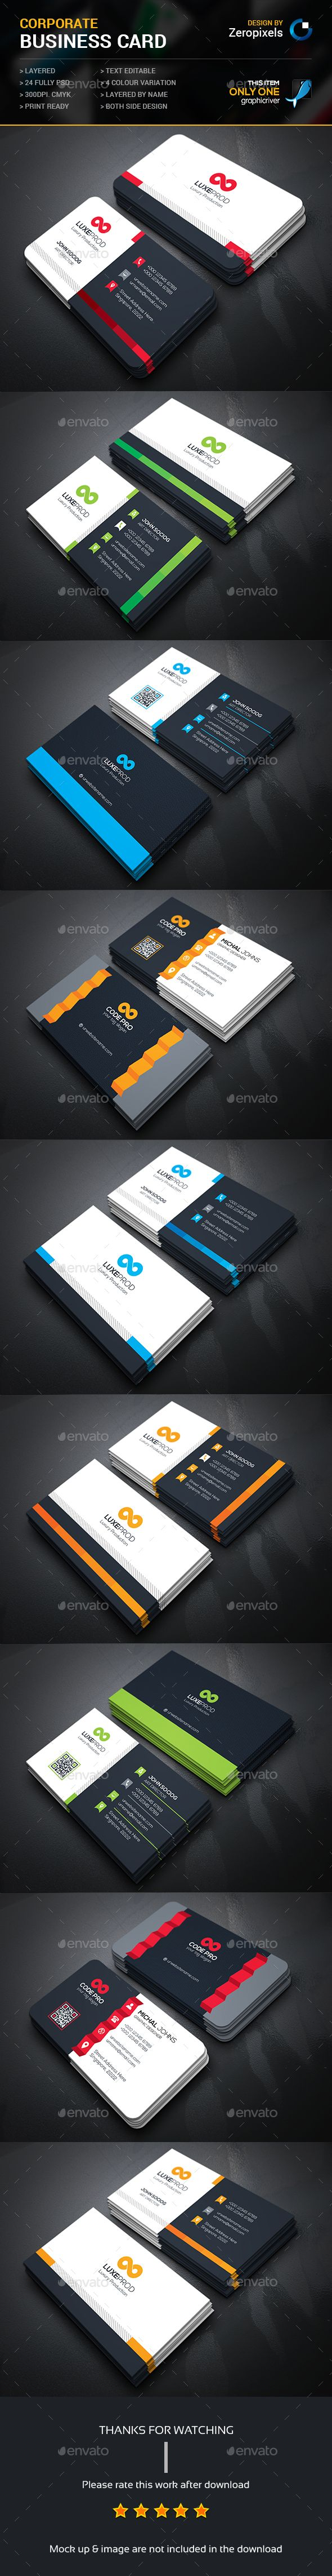 Corporate Business Card Bundle Templates PSD. Download here: http://graphicriver.net/item/corporate-business-card-bundle/15980392?ref=ksioks